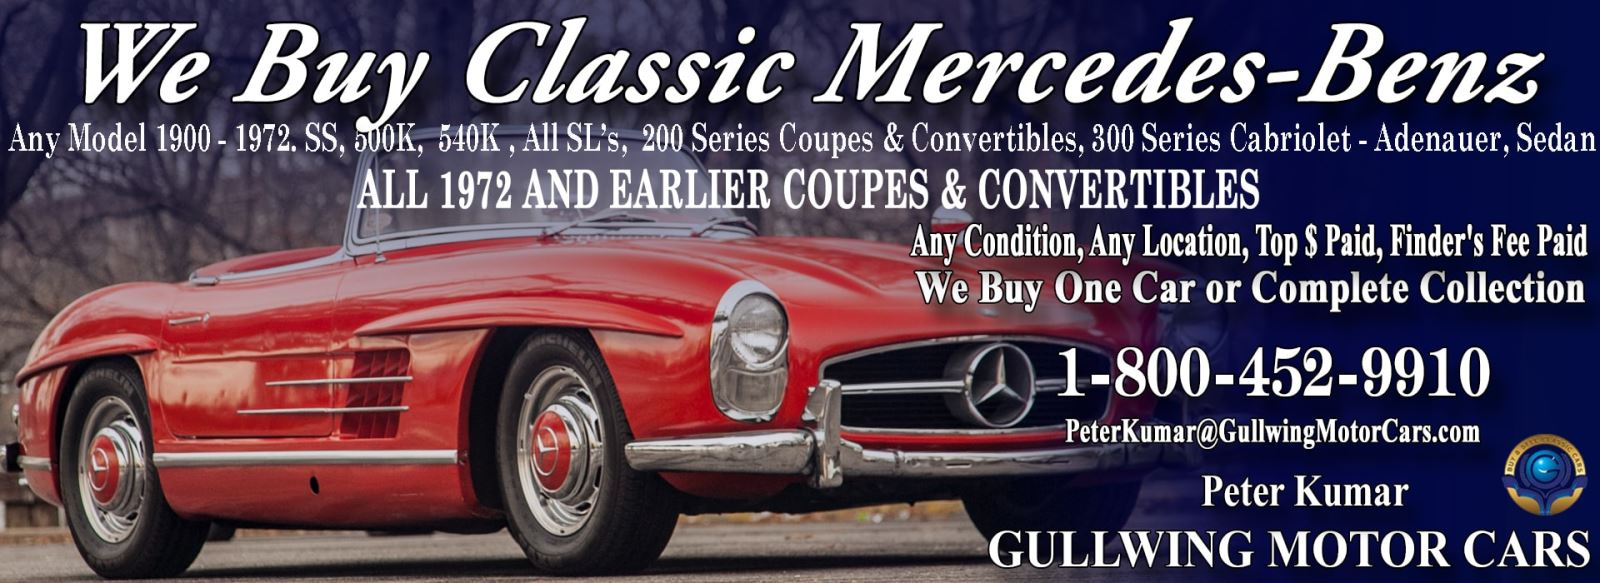 Classic Mercedes 290 for sale, we buy vintage Mercedes 290. Call Peter Kumar. Gullwing Motor